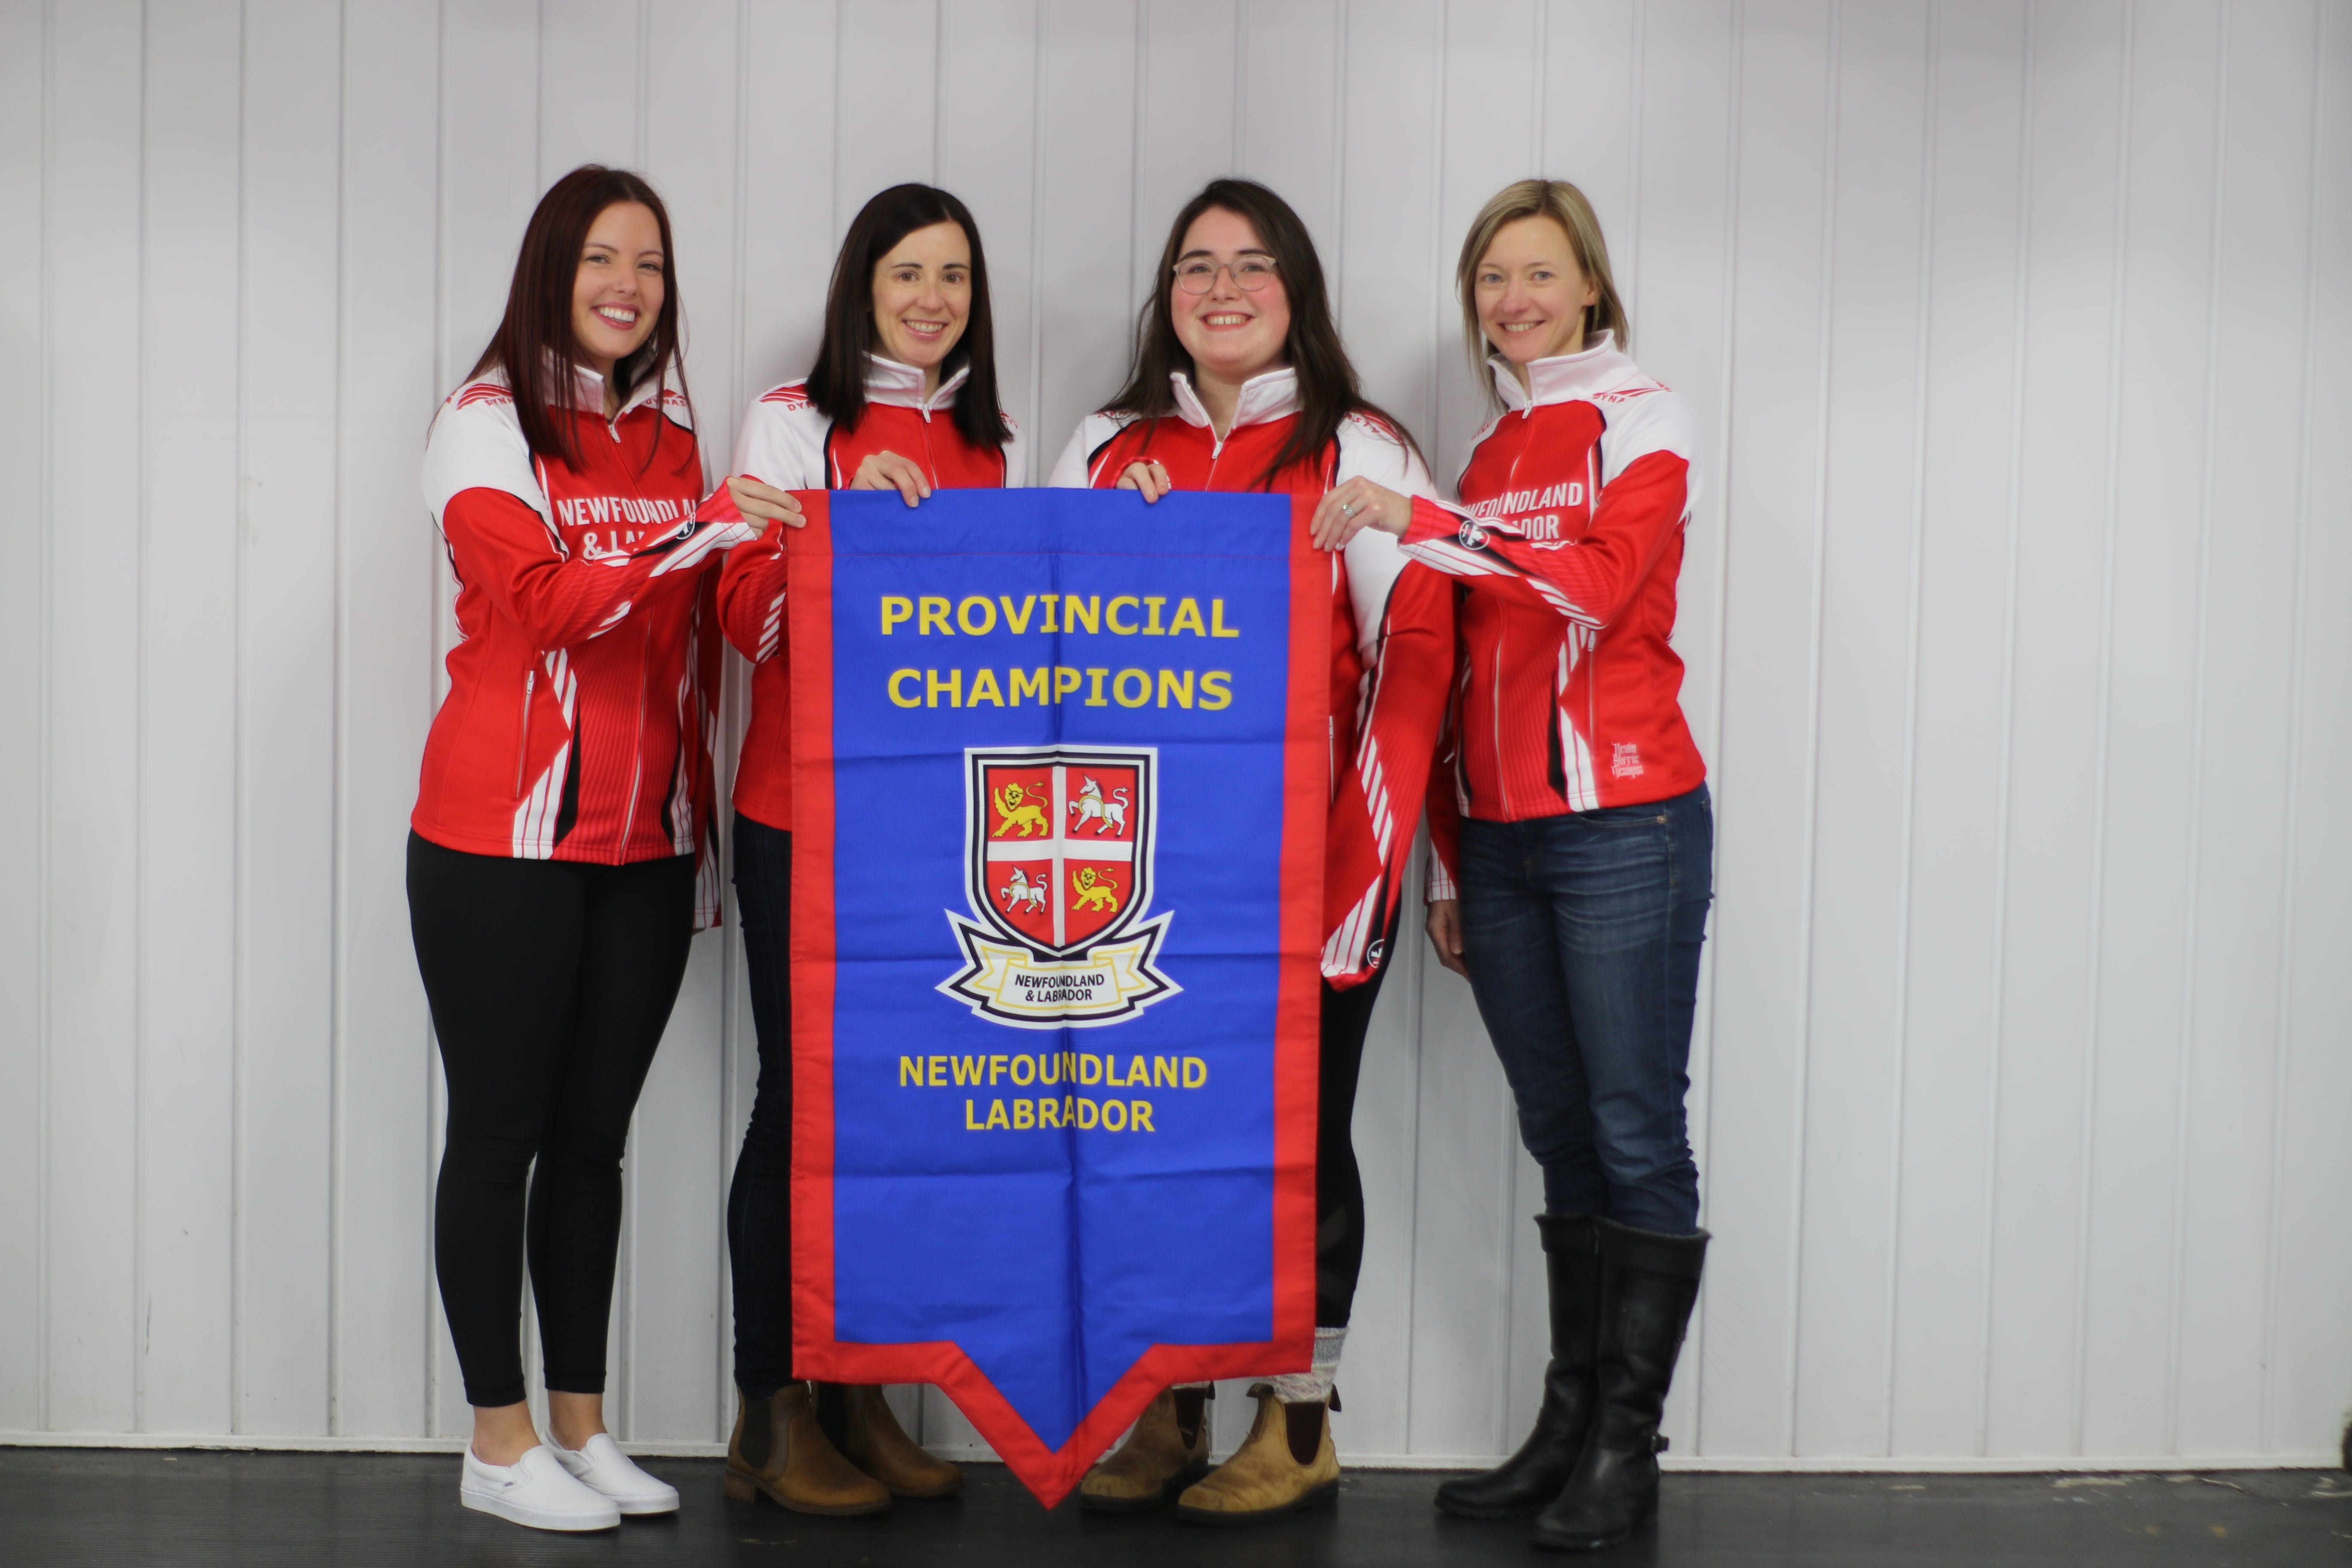 The members of the Sarah Hill-skipped rink hold up the championship banner after taking the 2021 Scotties Newfoundland and Labrador women's curling crown Saturday in St. John's by defeating Mackenzie Mitchell's team in a championship series. From left, Hill, Beth Hamilton, Laren Barron and Adrienne Mercer. — Contributed/Alex Phillips